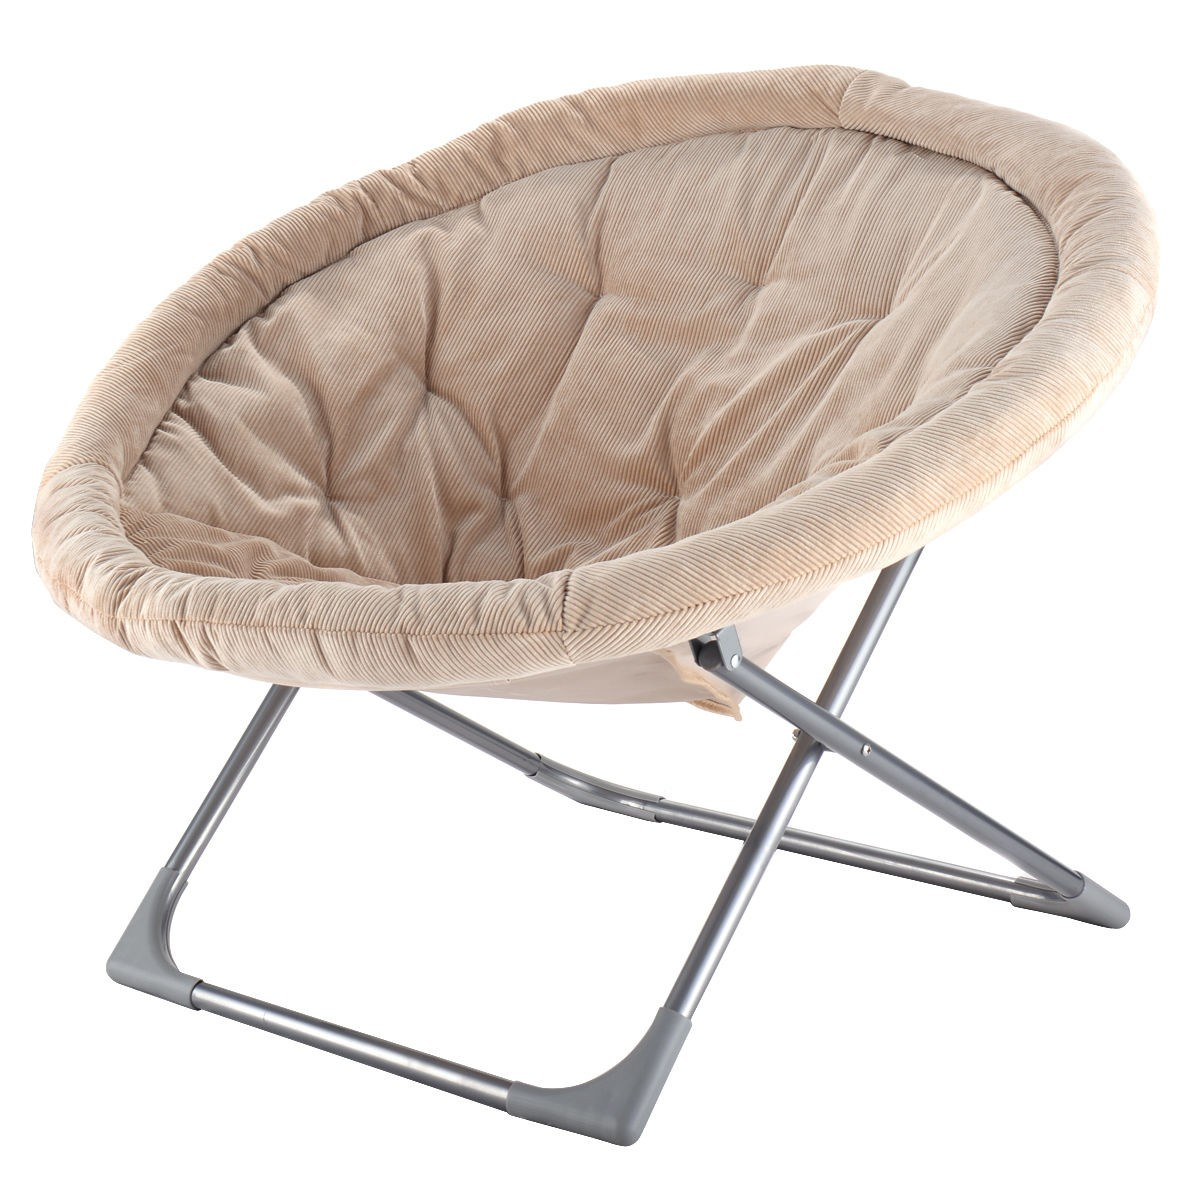 Oversized Large Folding Saucer Moon Chair Corduroy Round Seat Living ...